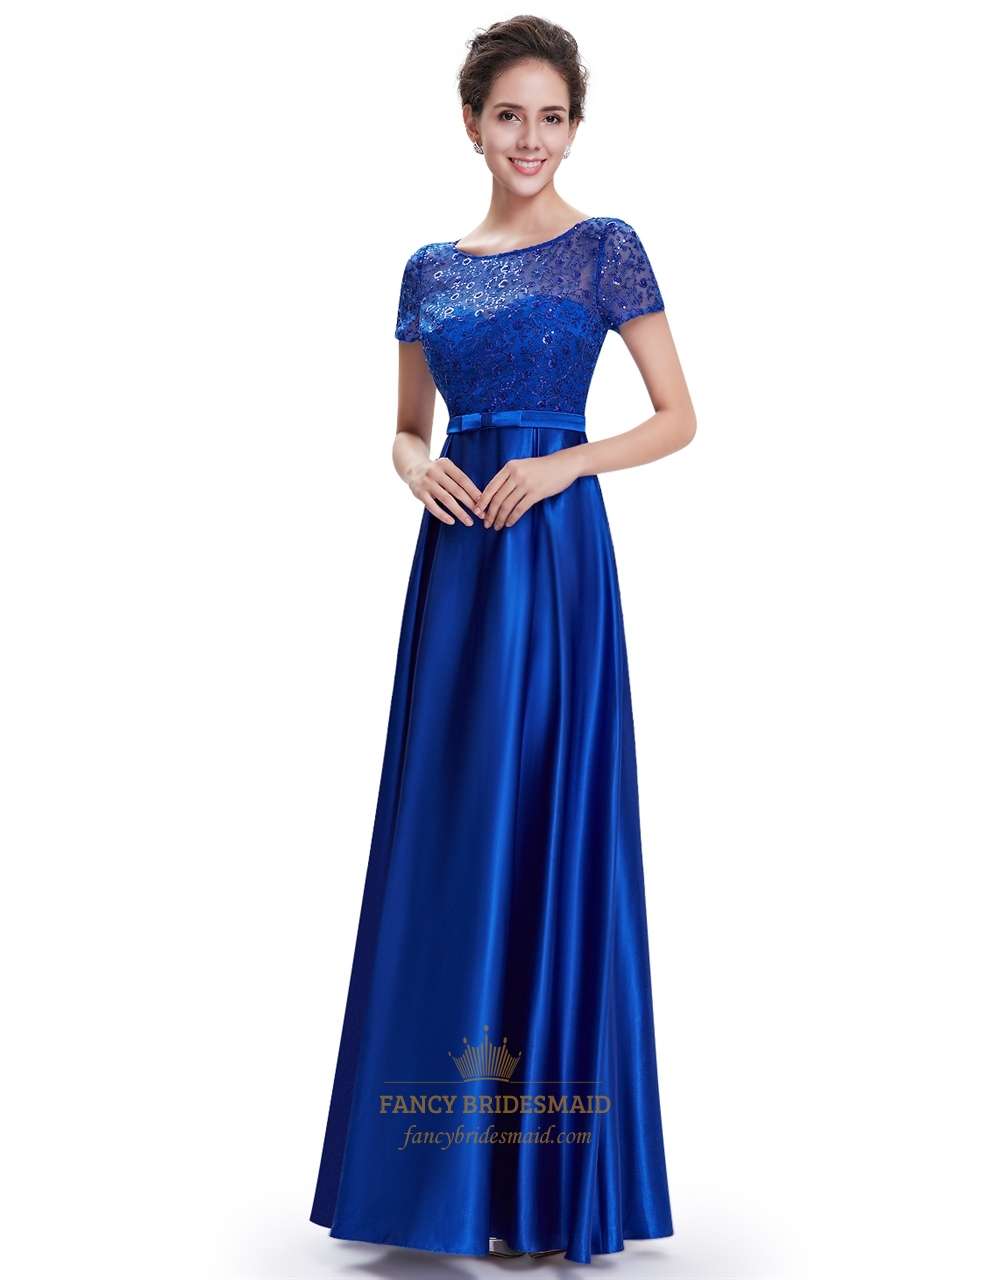 Royal blue lace dress with sleeves